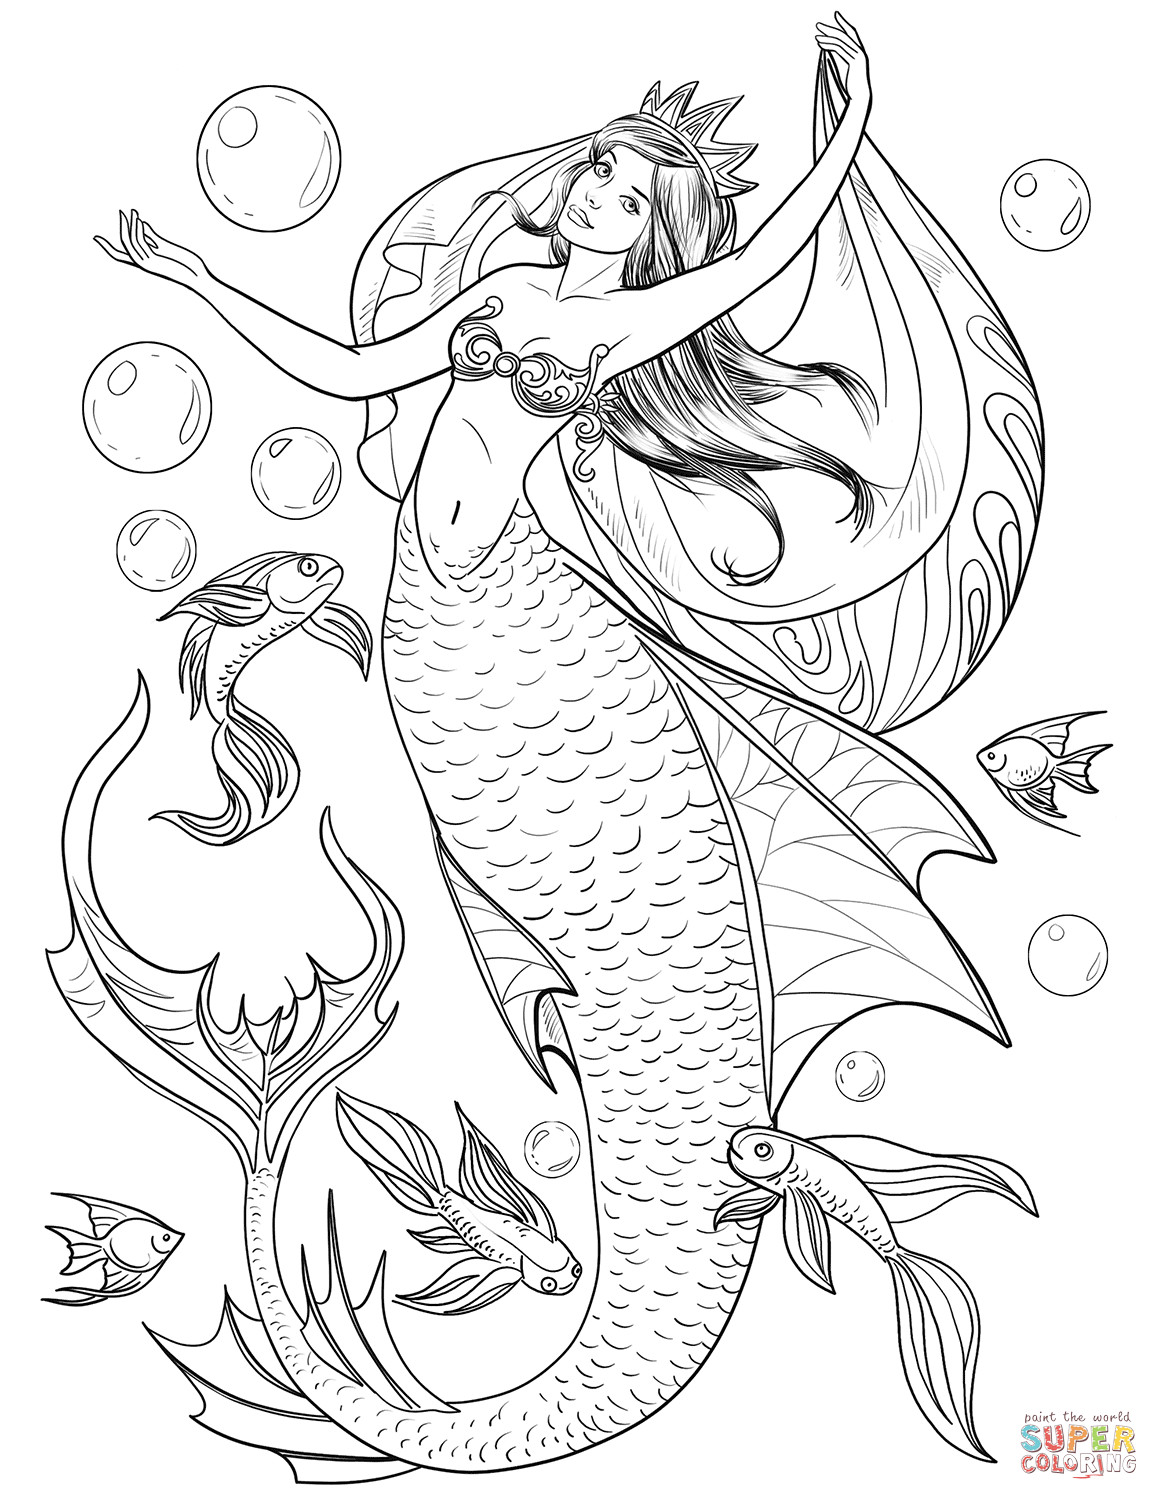 Best ideas about Coloring Pages For Girls Mermaids . Save or Pin Mermaid coloring page Now.